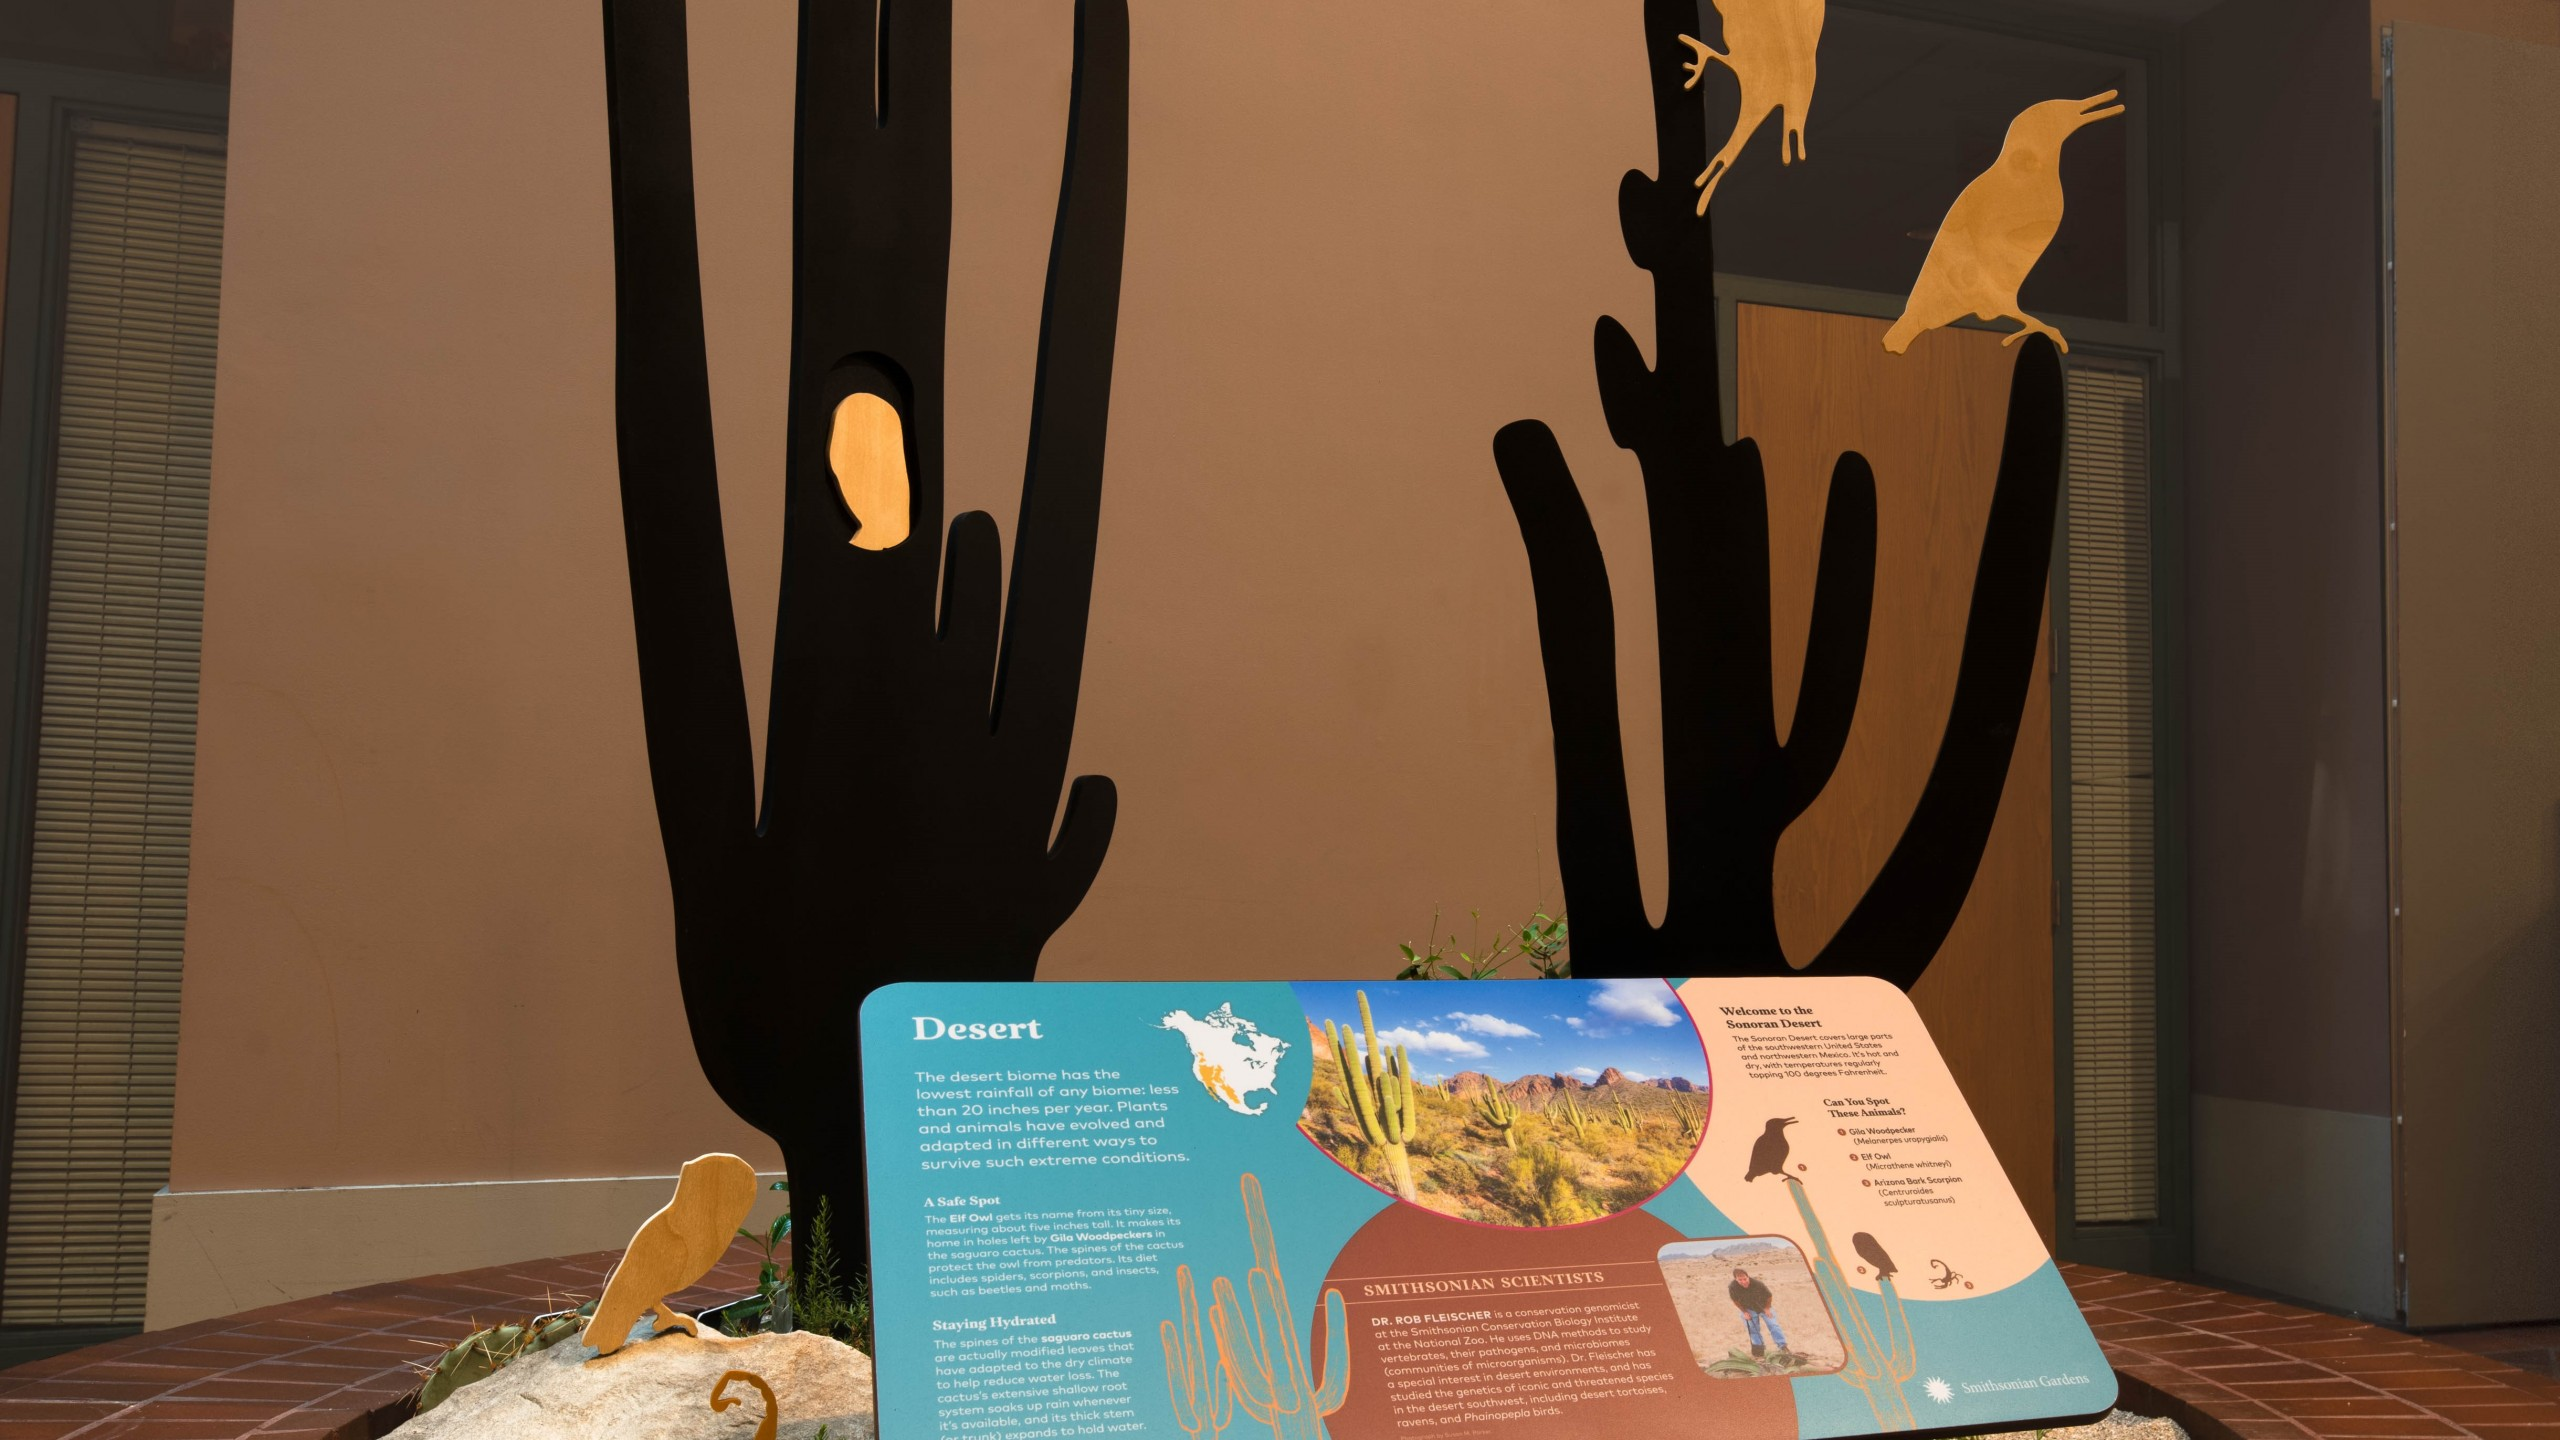 Biomes: Life in Balance inside the S. Dillon Ripley Center, Habitat Exhibition. Carolyn Thome, photographer.